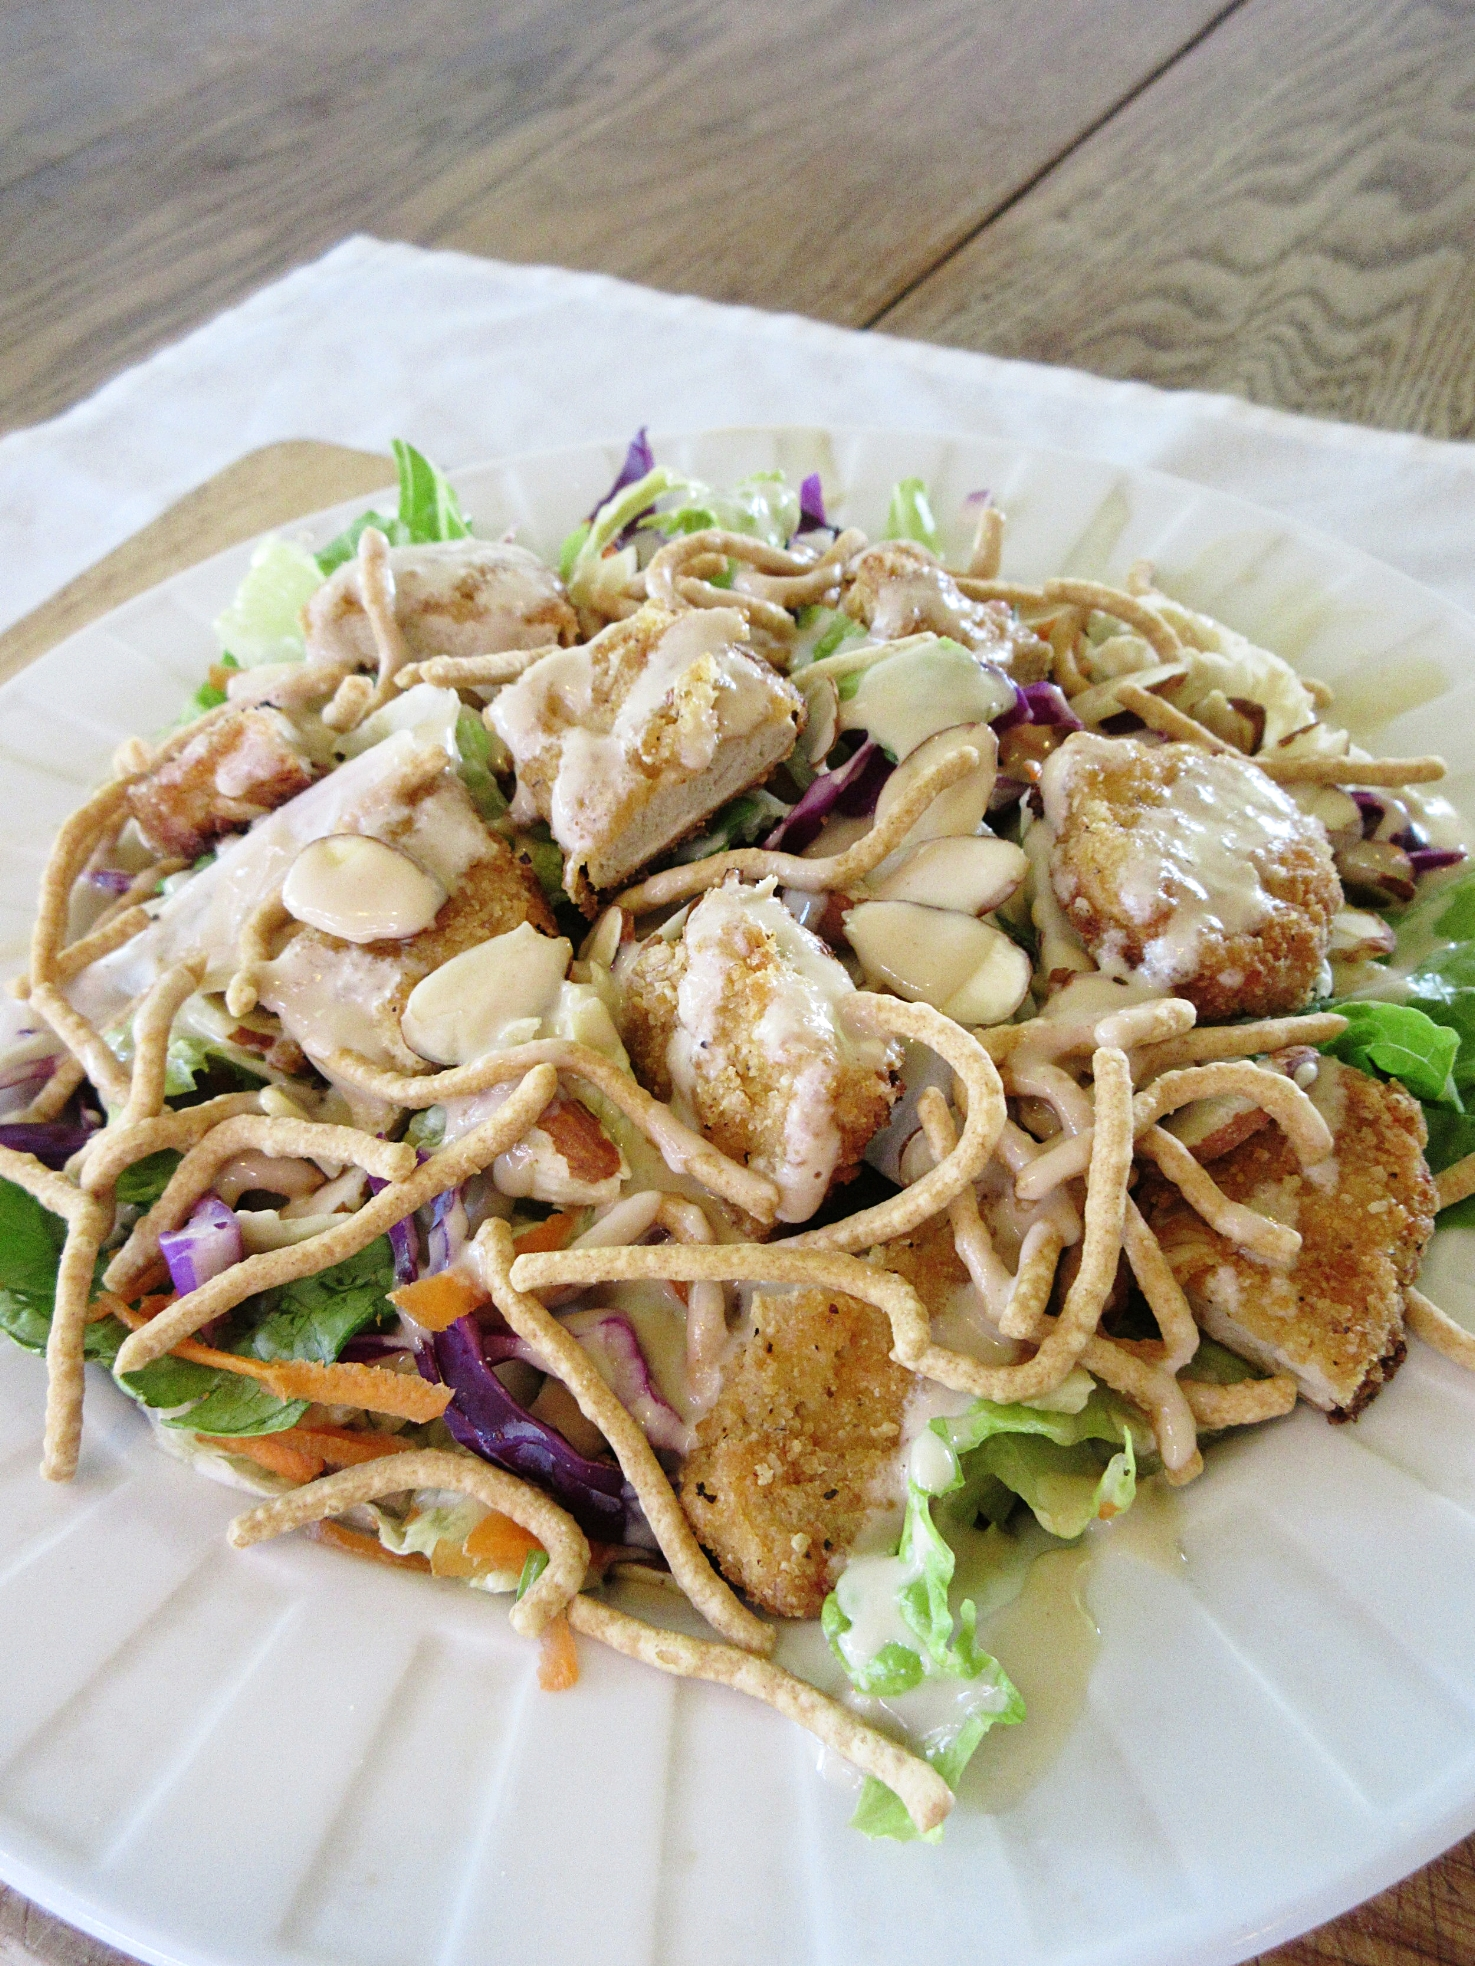 applebee's oriental chicken salad vegan copycat recipe